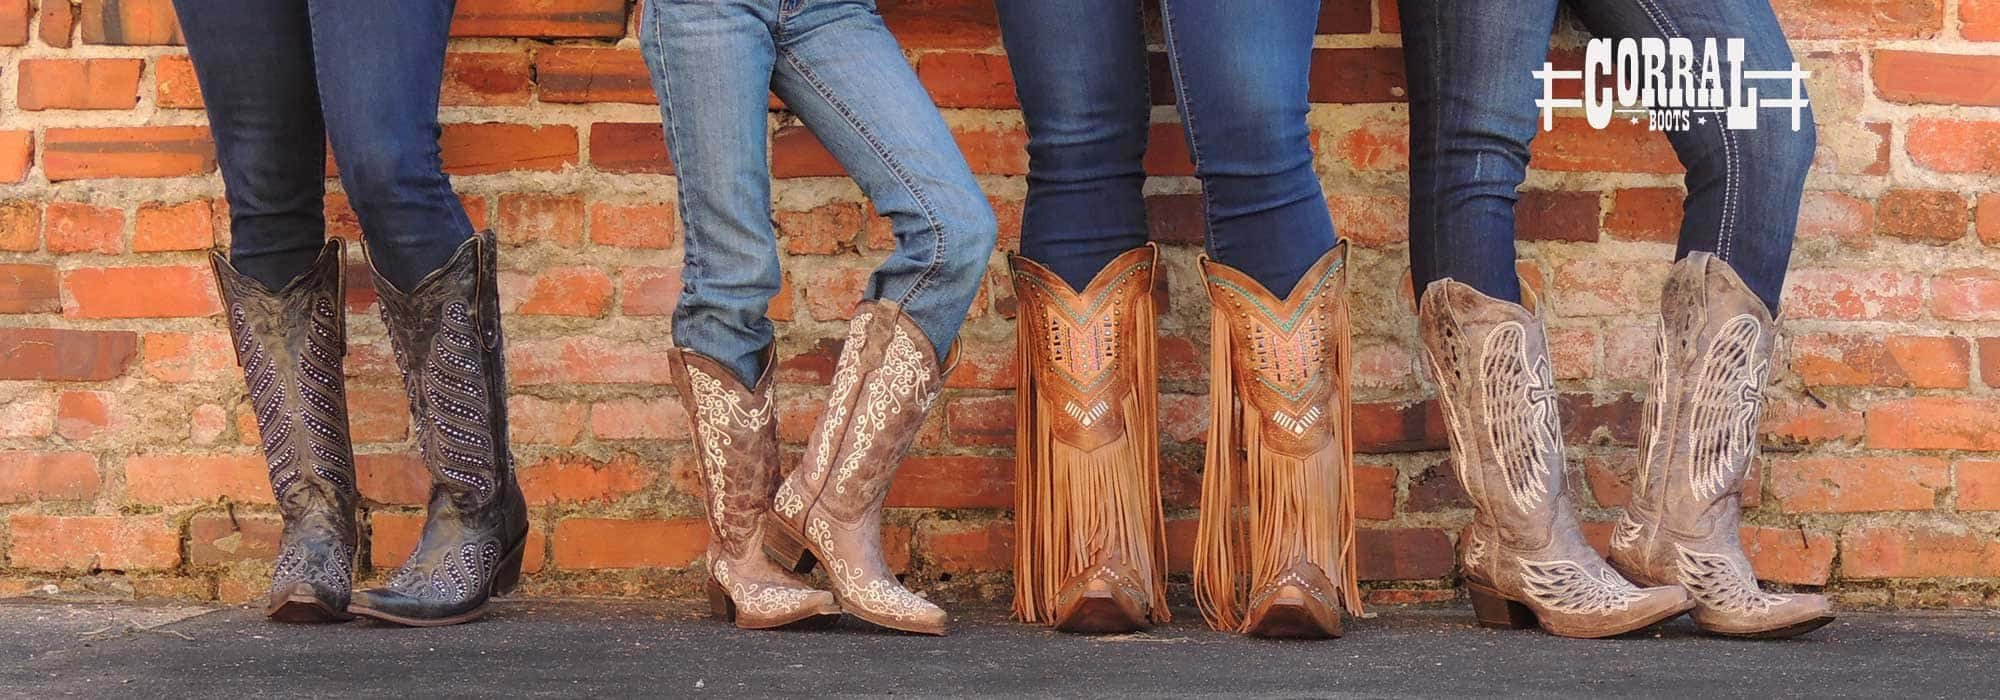 Wild West Boot Store Famous Brand Mens And Womens Cowboy Boots Wire Harness Corral